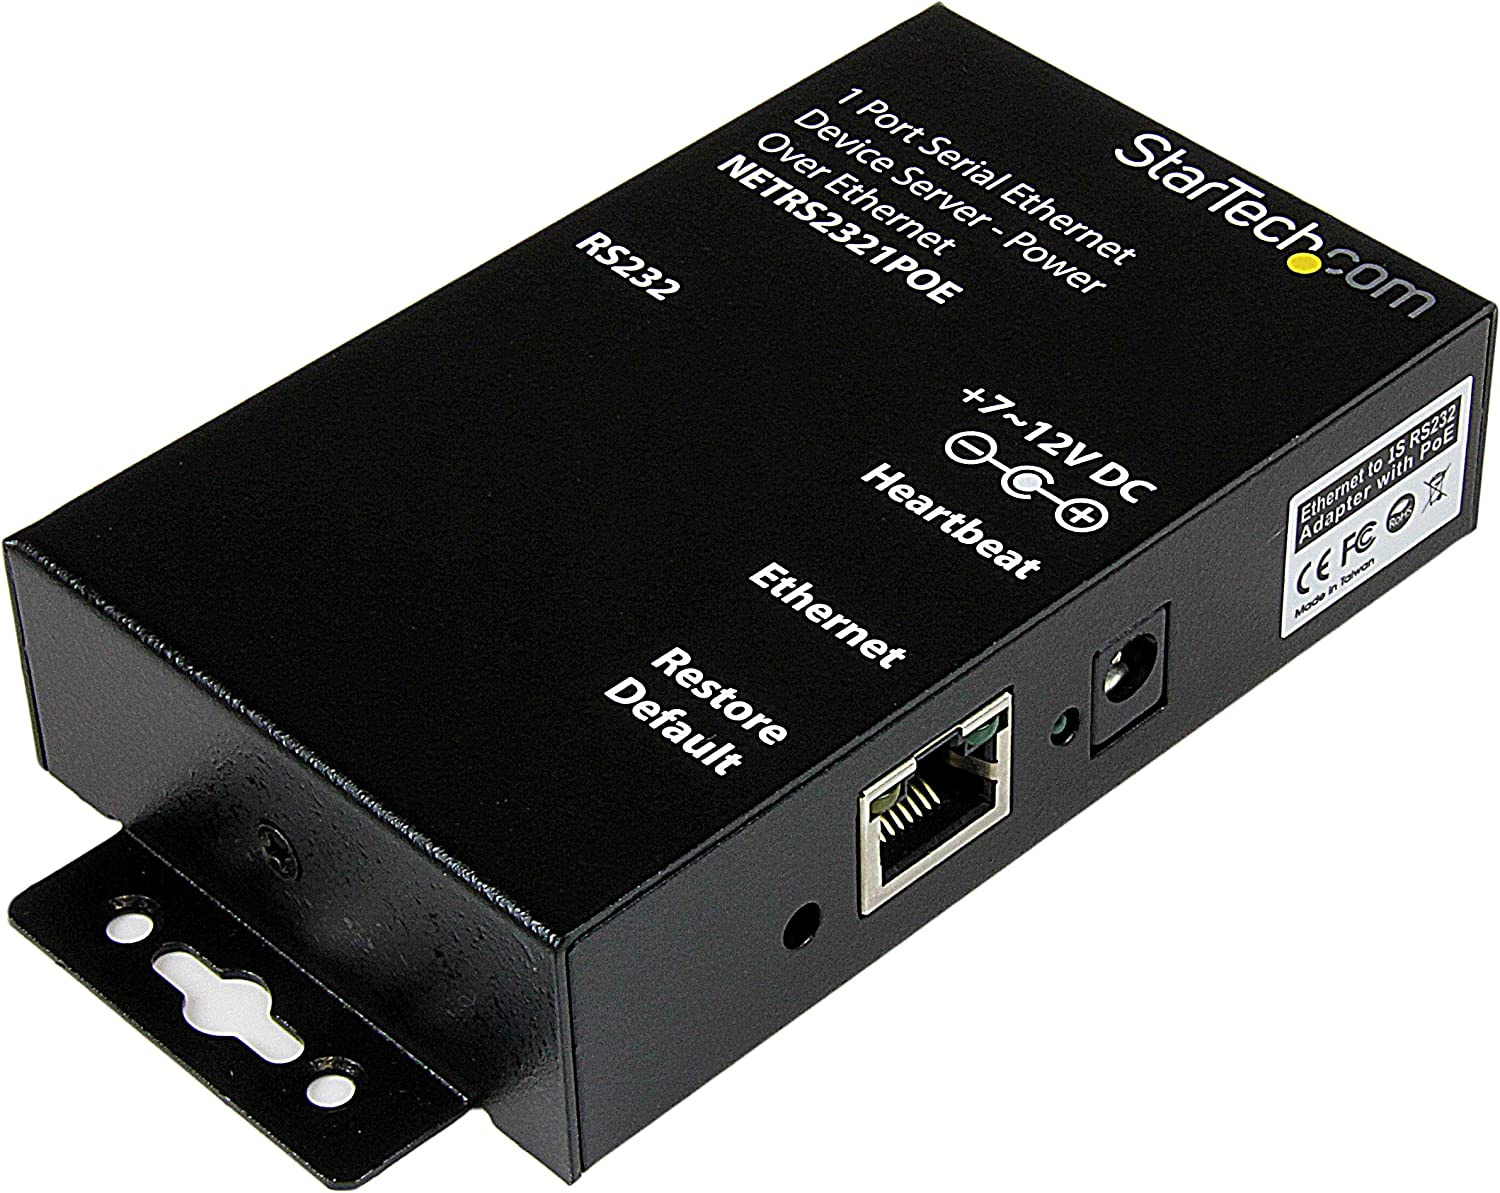 Startech.Com Convertitore Seriale Ethernet Rs-232 a 1 Porta Poe Power Over Ethernet